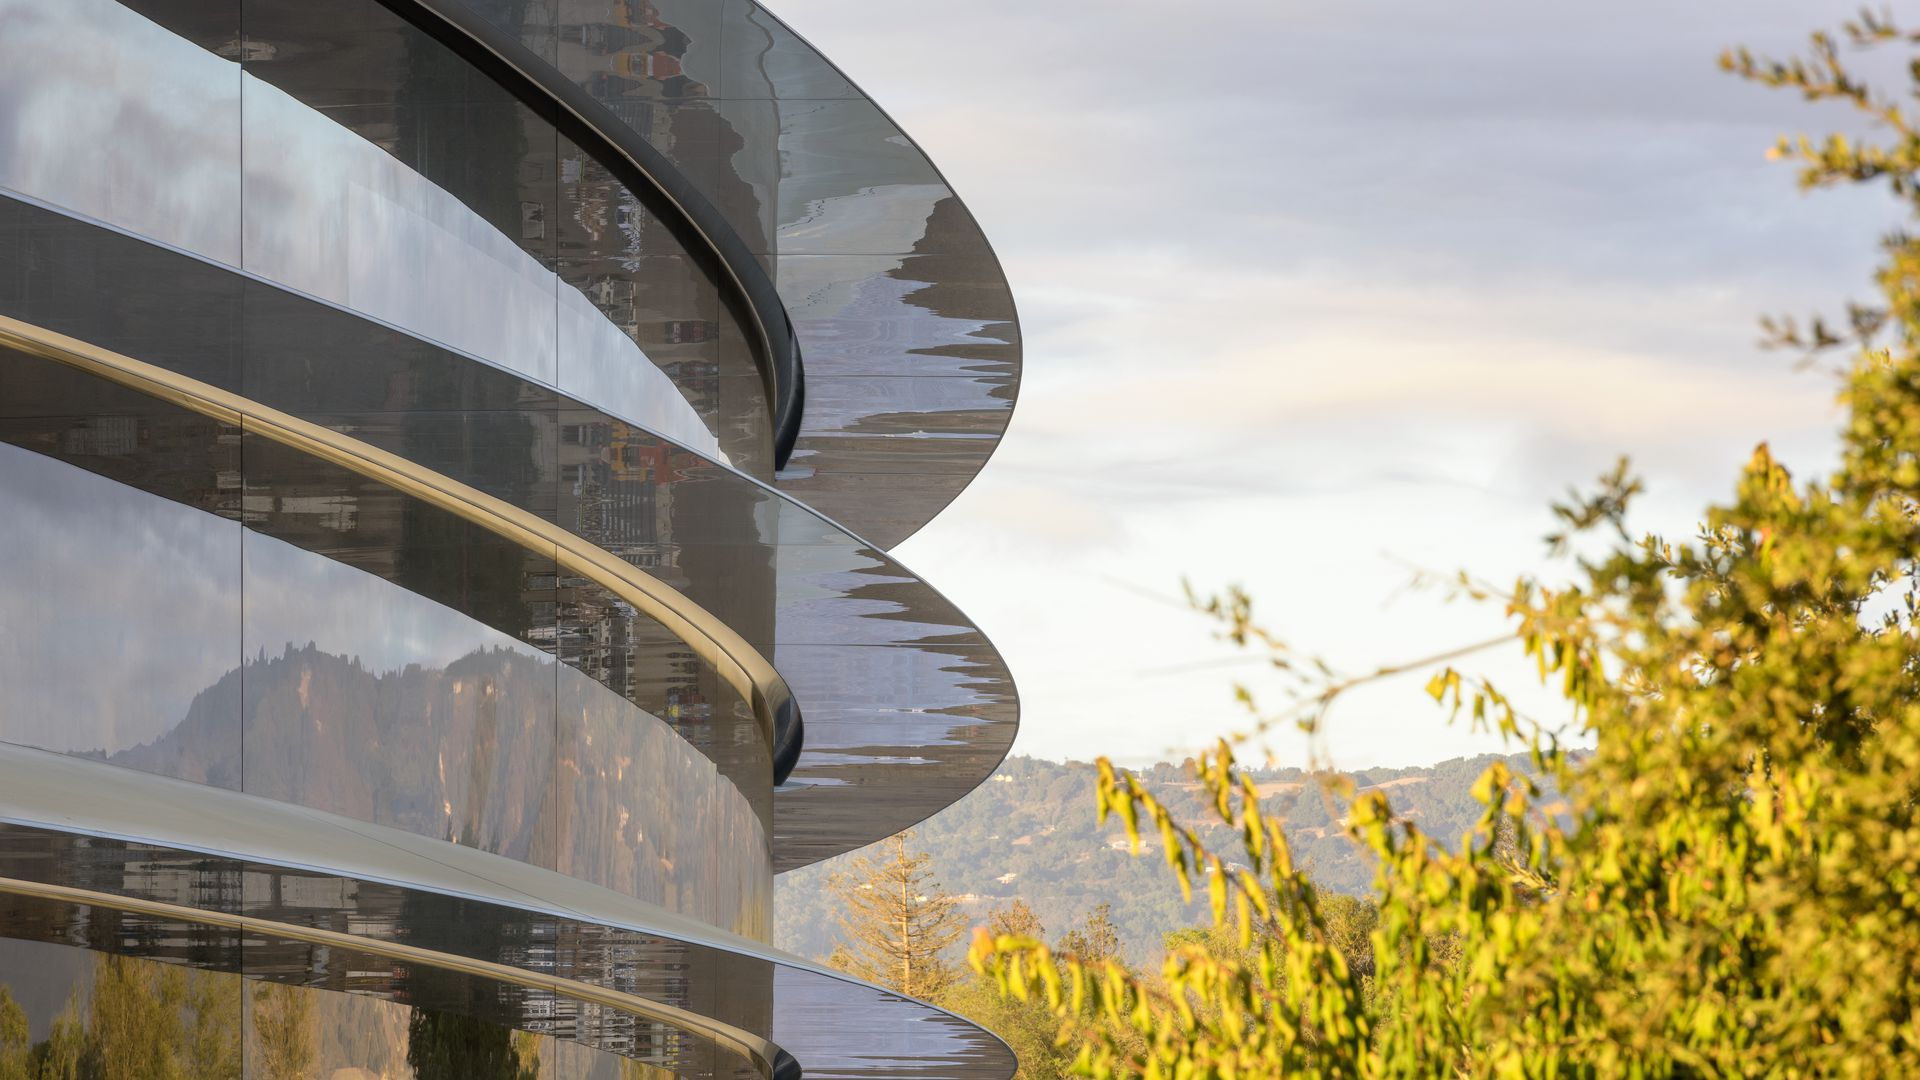 Side outside view of Apple's new headquarters with trees in background